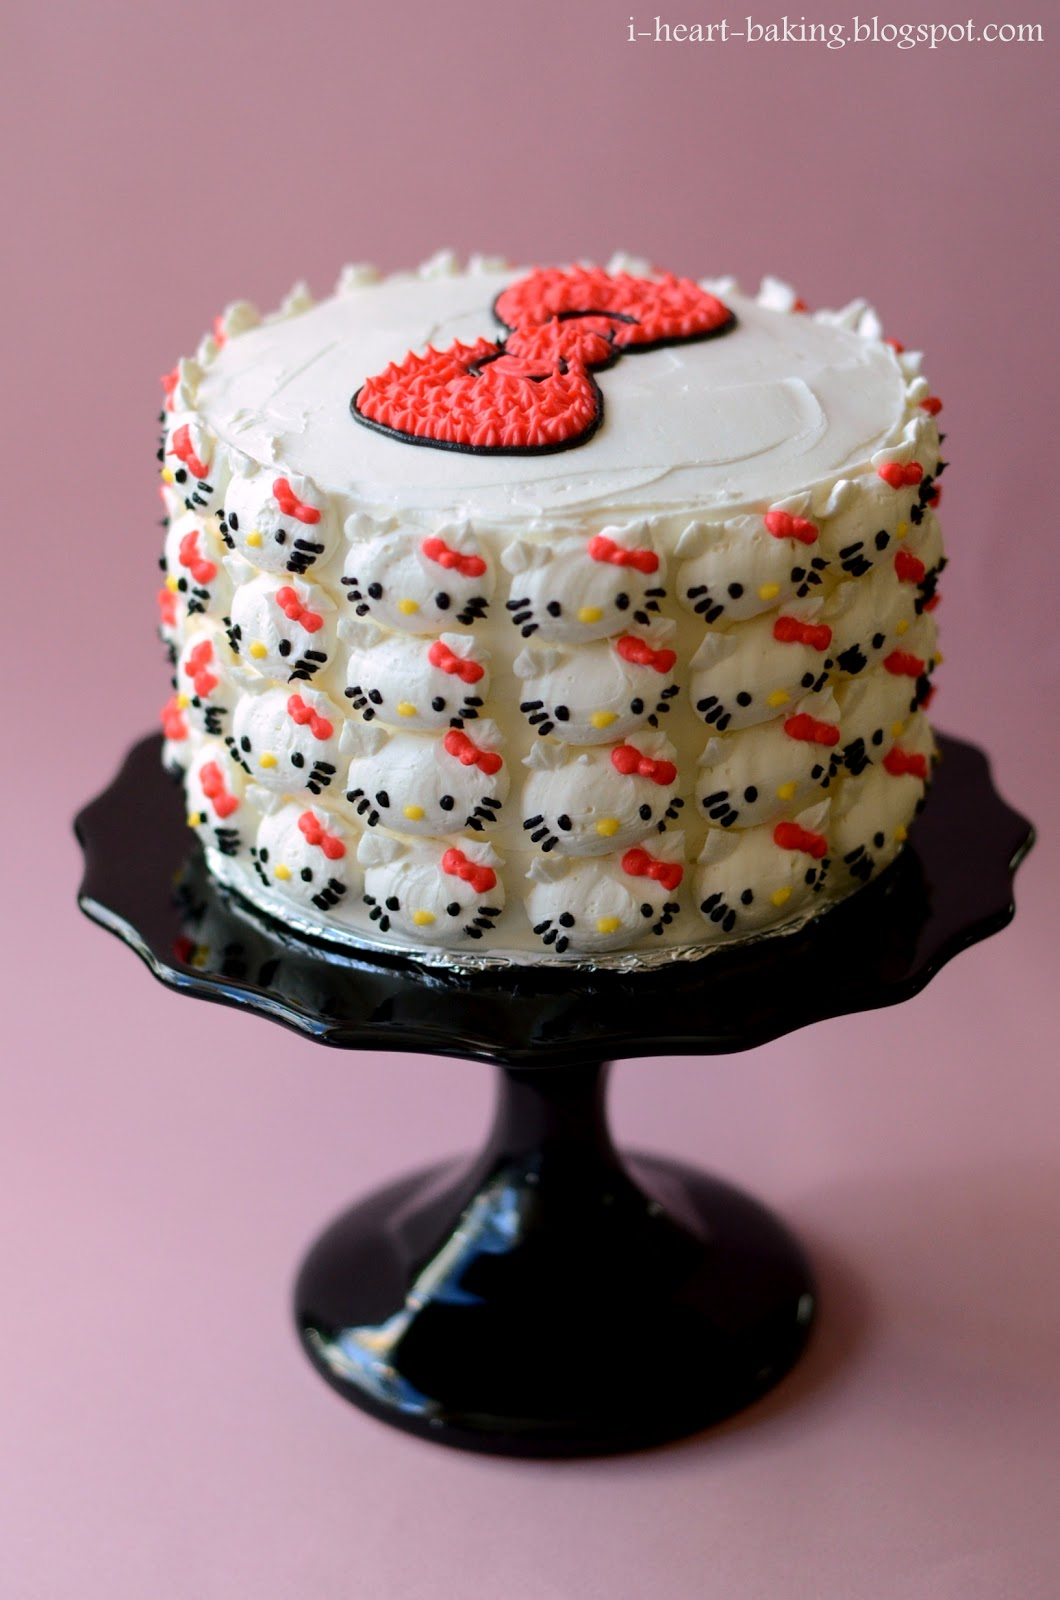 I Heart Baking Hello Kitty Cake Pink Ombre Cake With Whipped